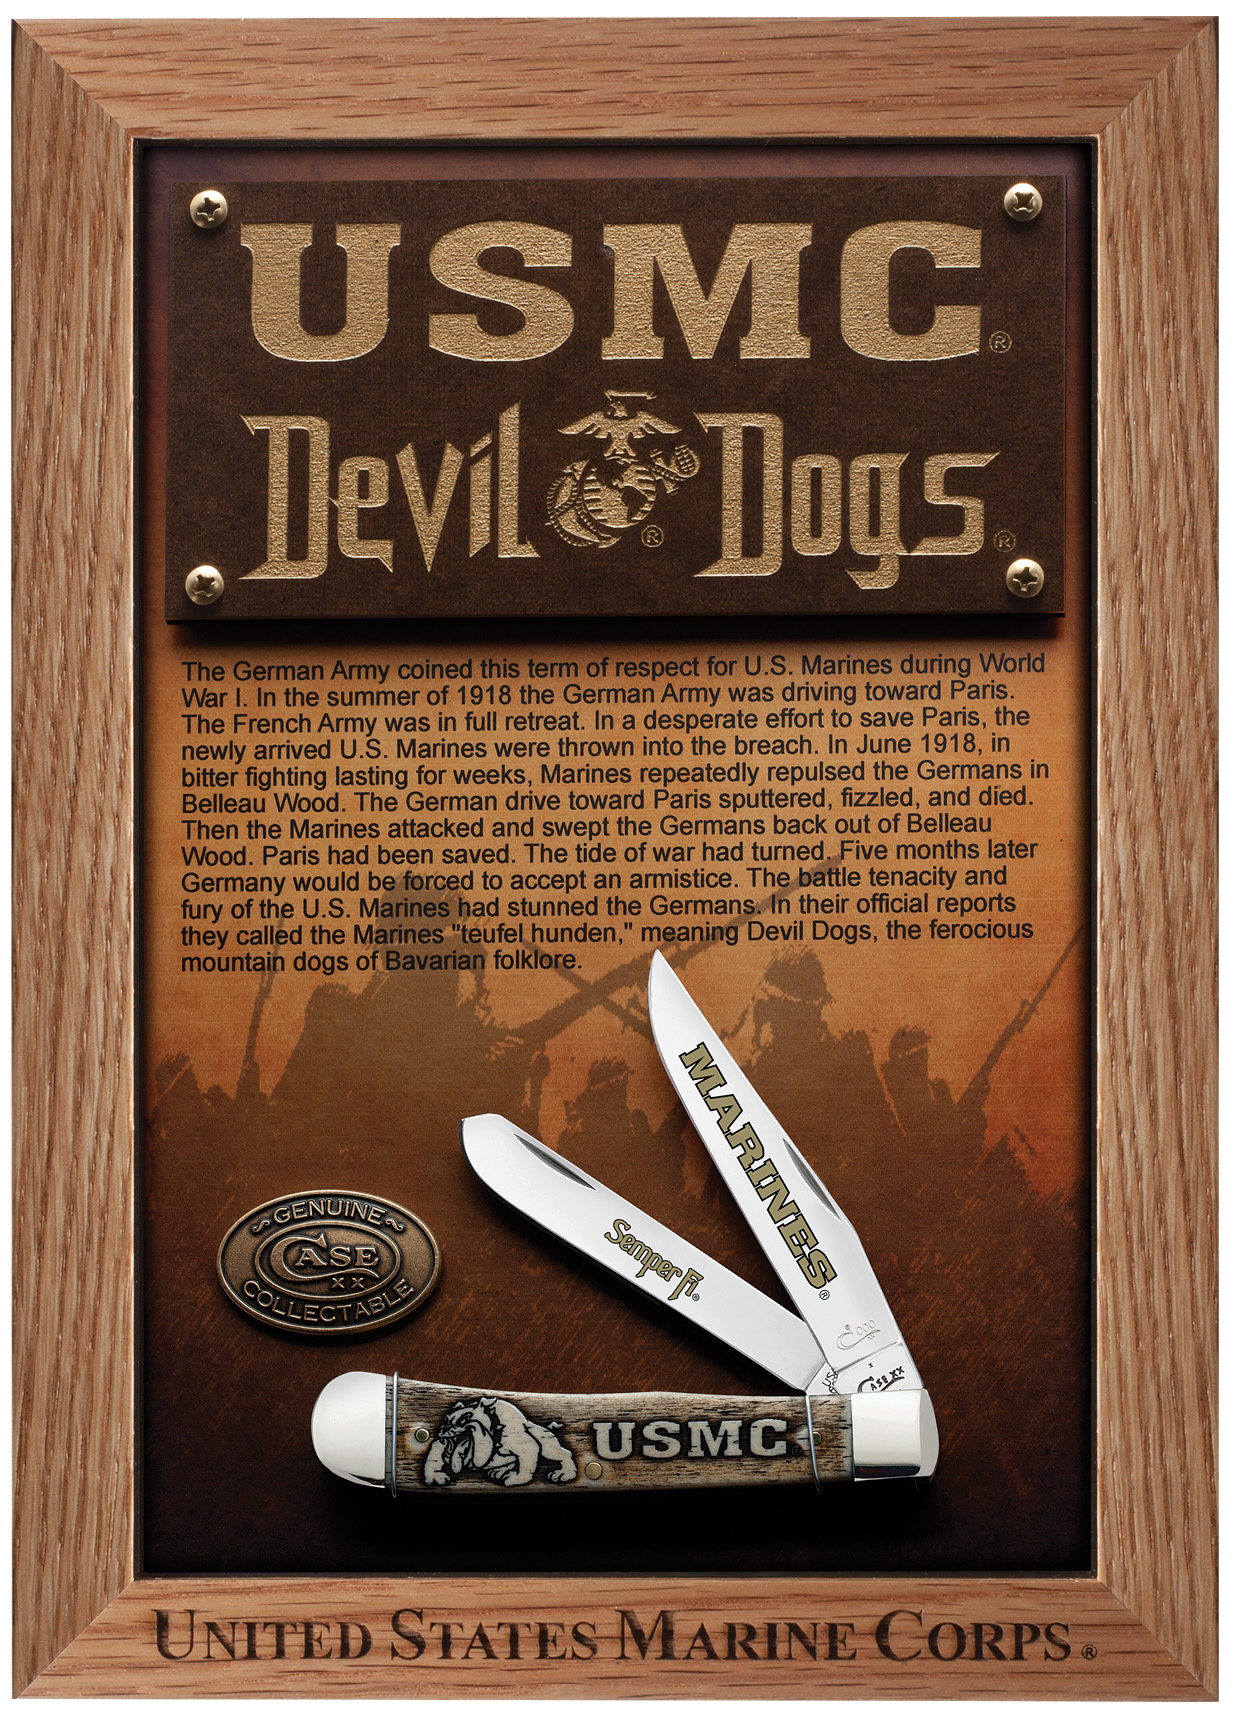 CASE XX KNIFE 13185 USMC DEVIL DOGS TRAPPER